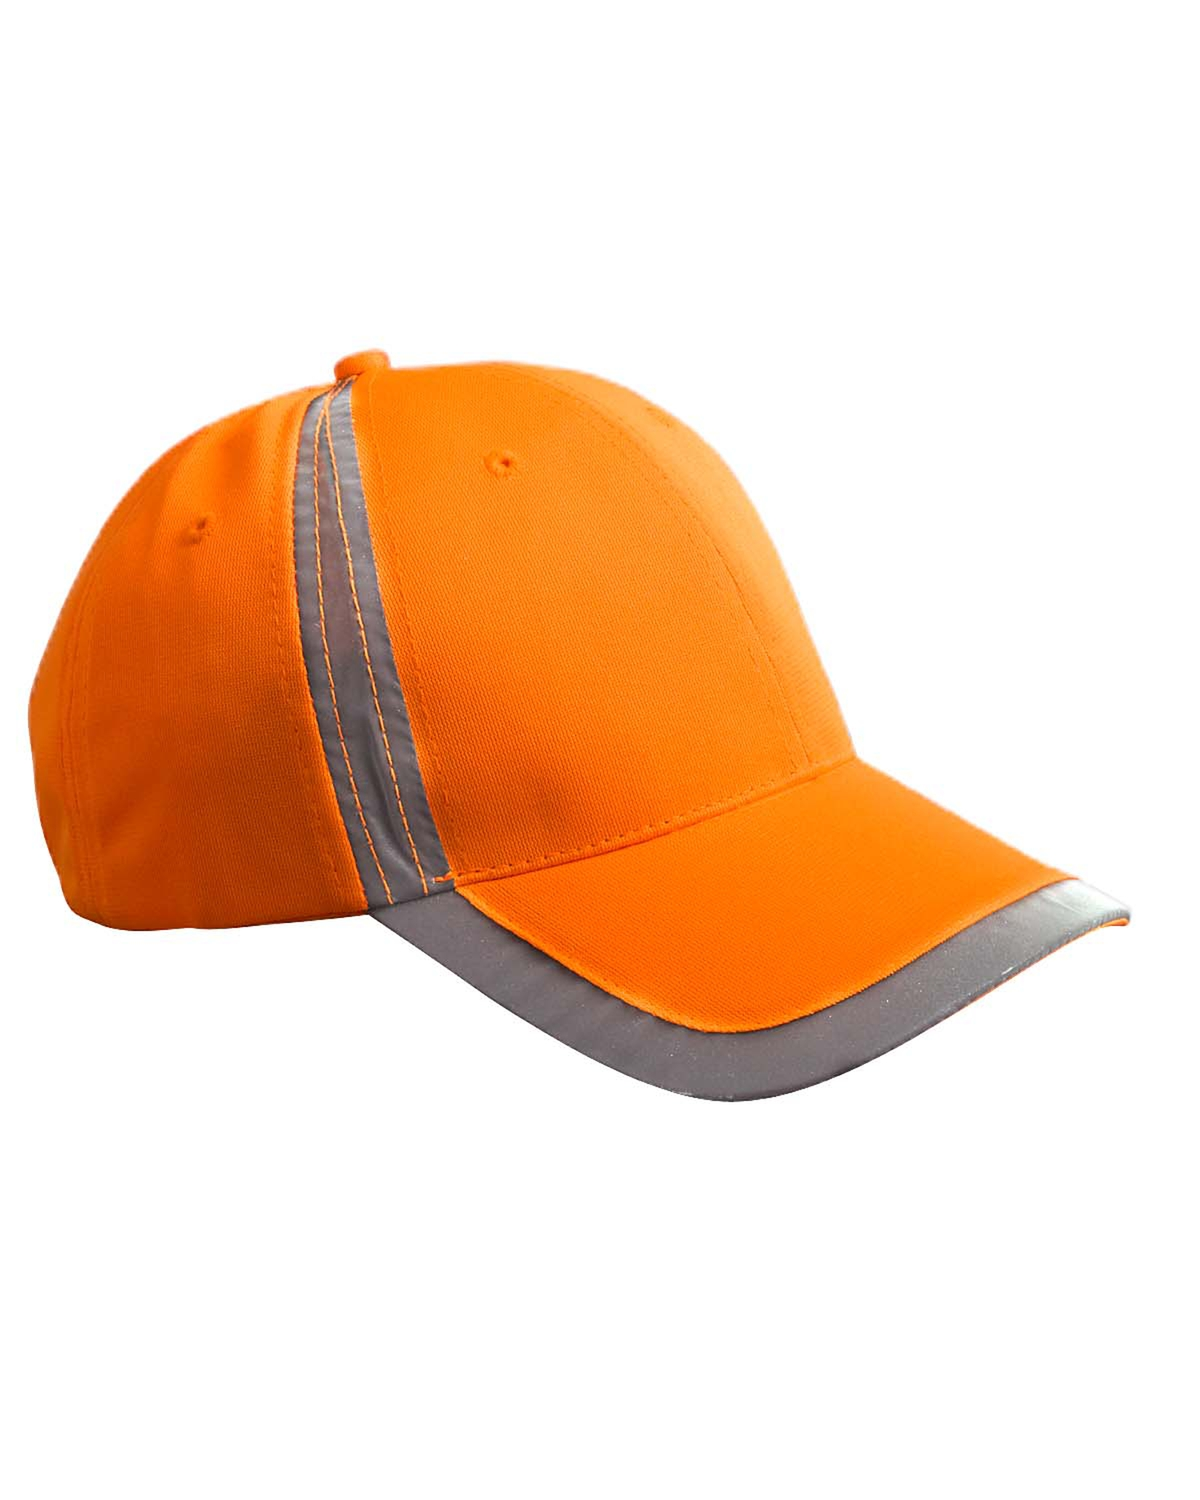 Big Accessories BX023 Reflective Accent Safety Cap